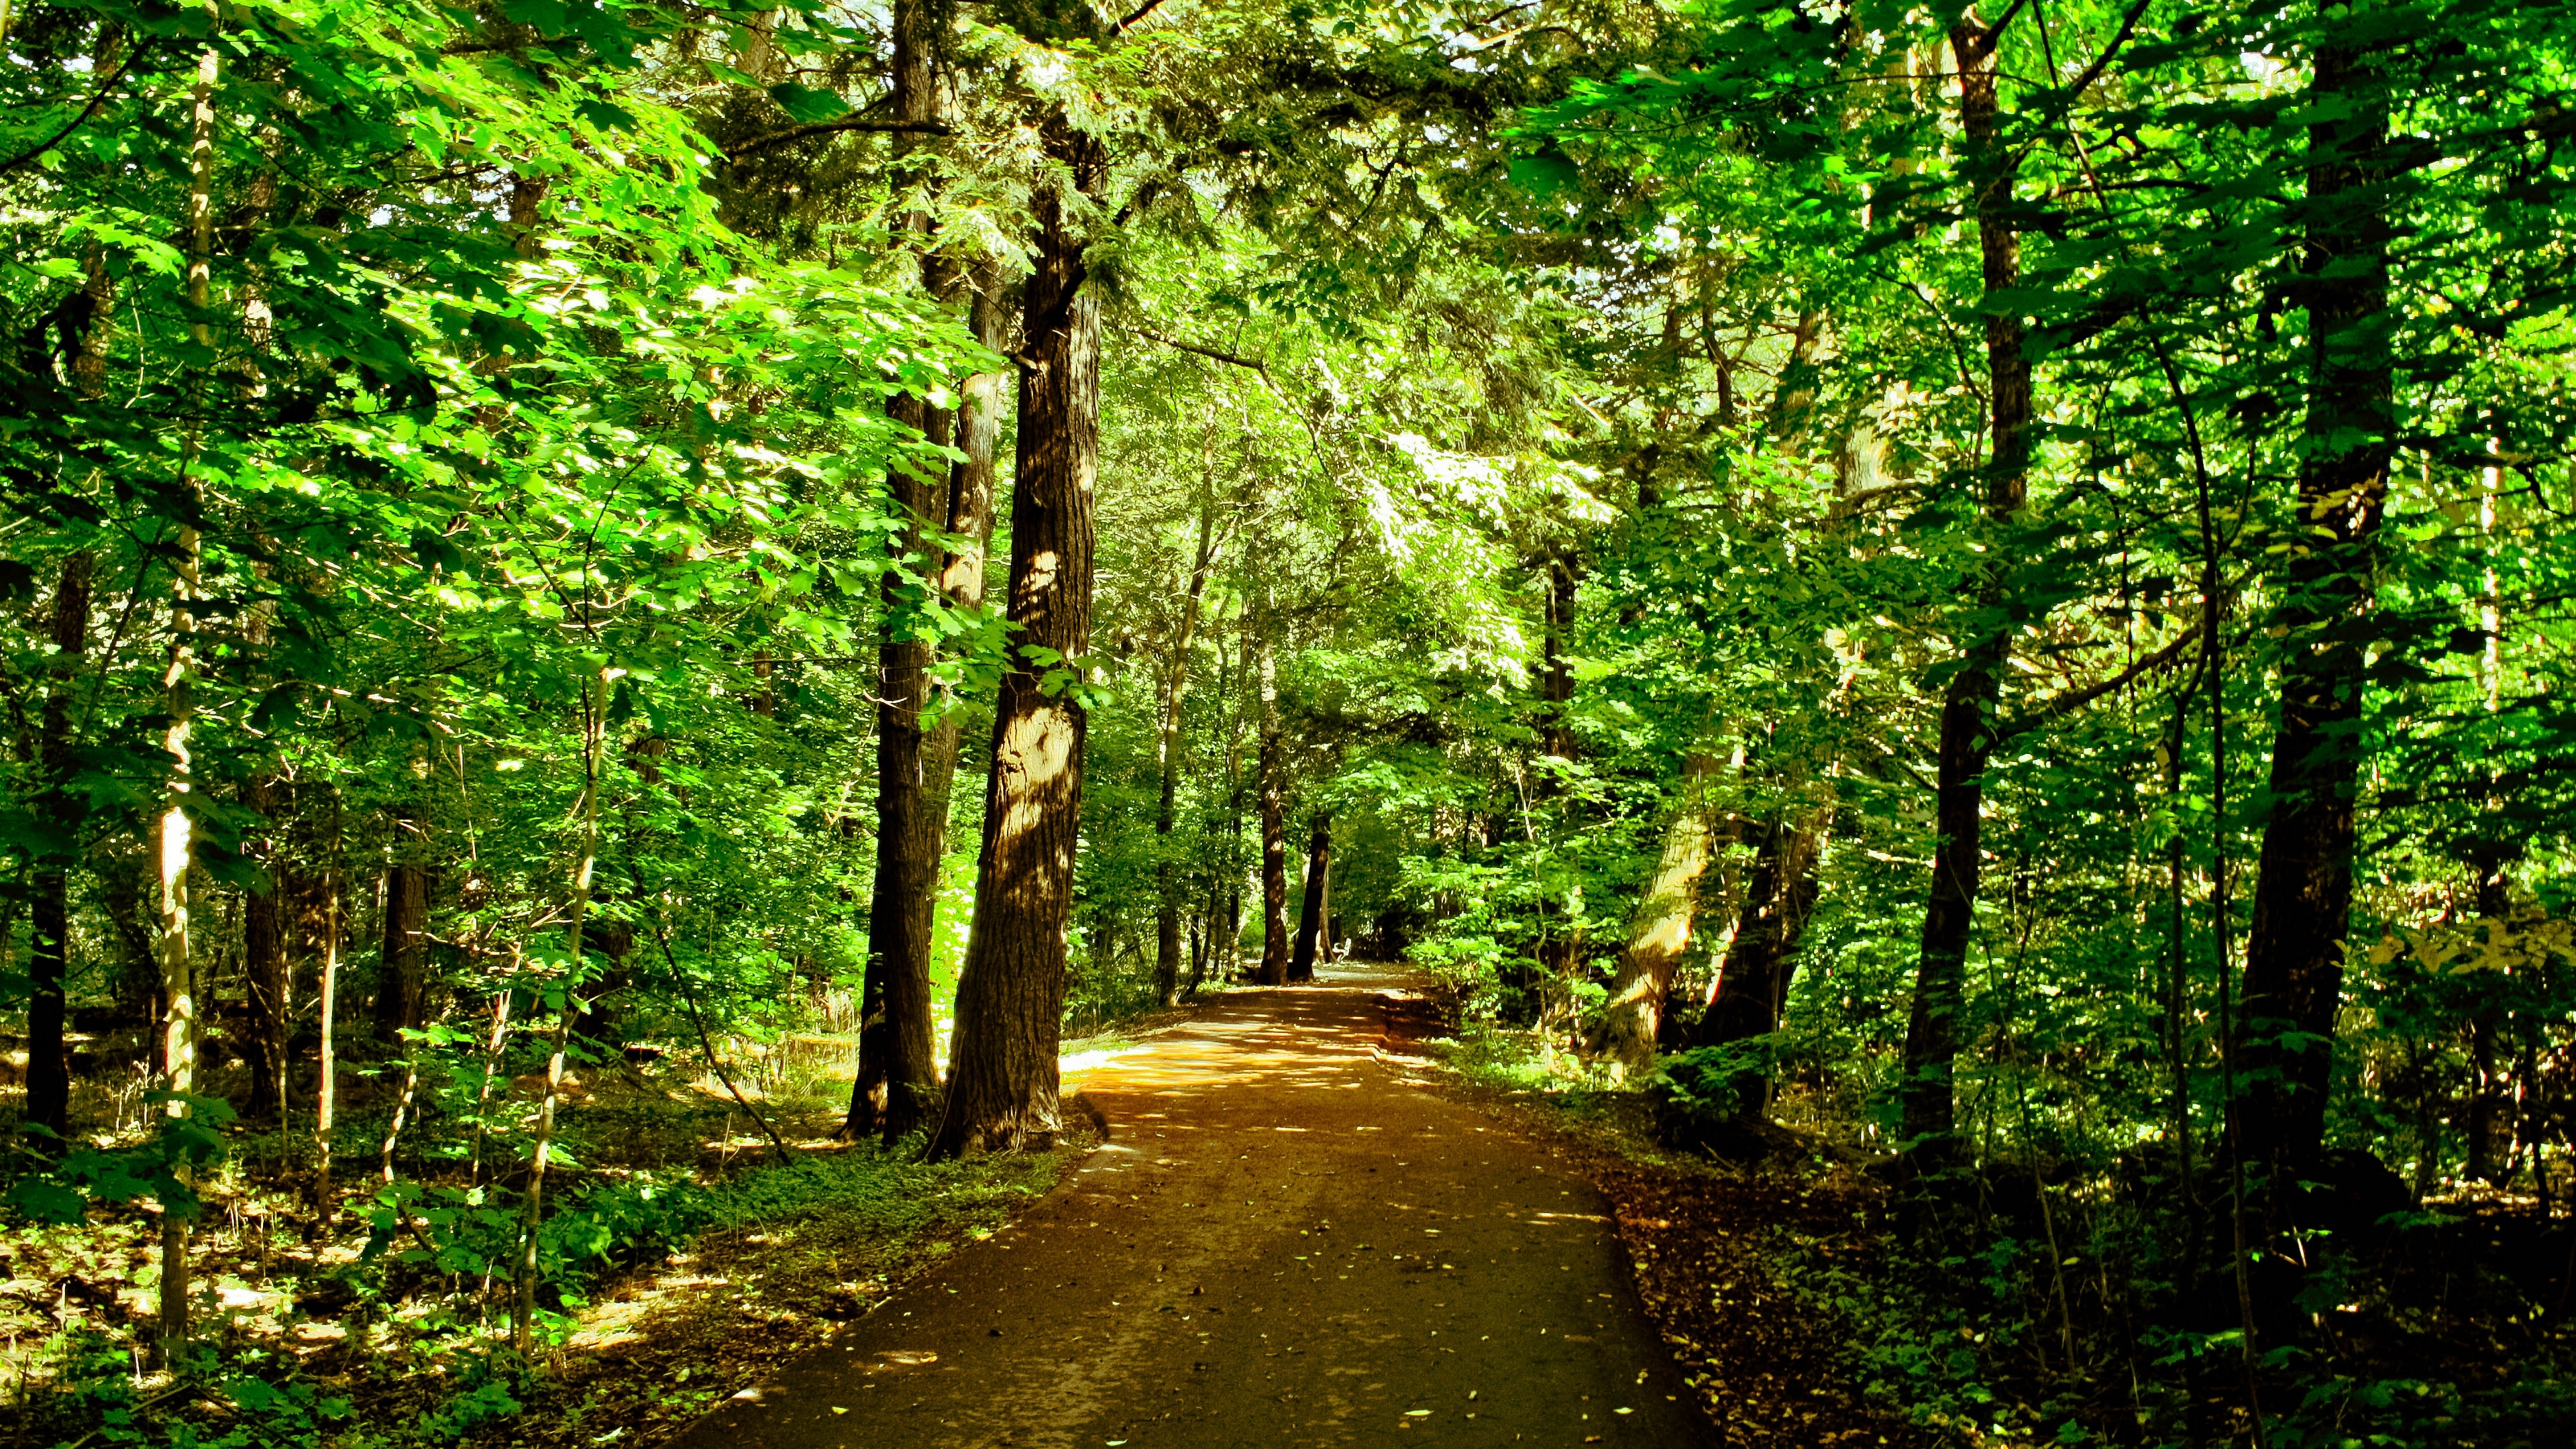 forest trees road nature 4k 1541114008 - forest, trees, road, nature 4k - Trees, Road, Forest